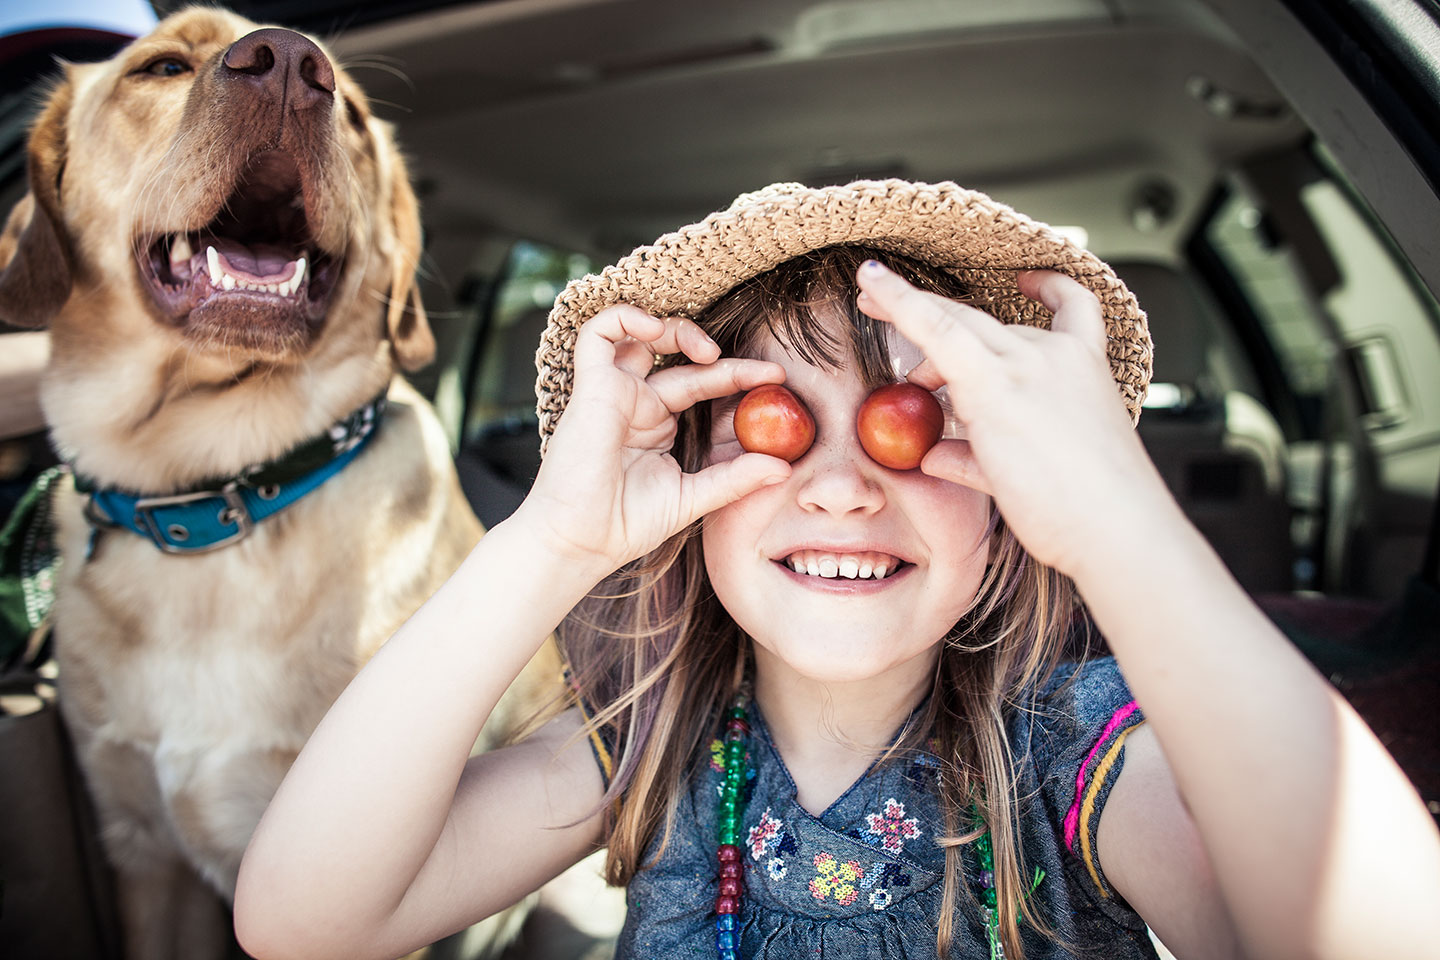 Girl and dog in the back of a car